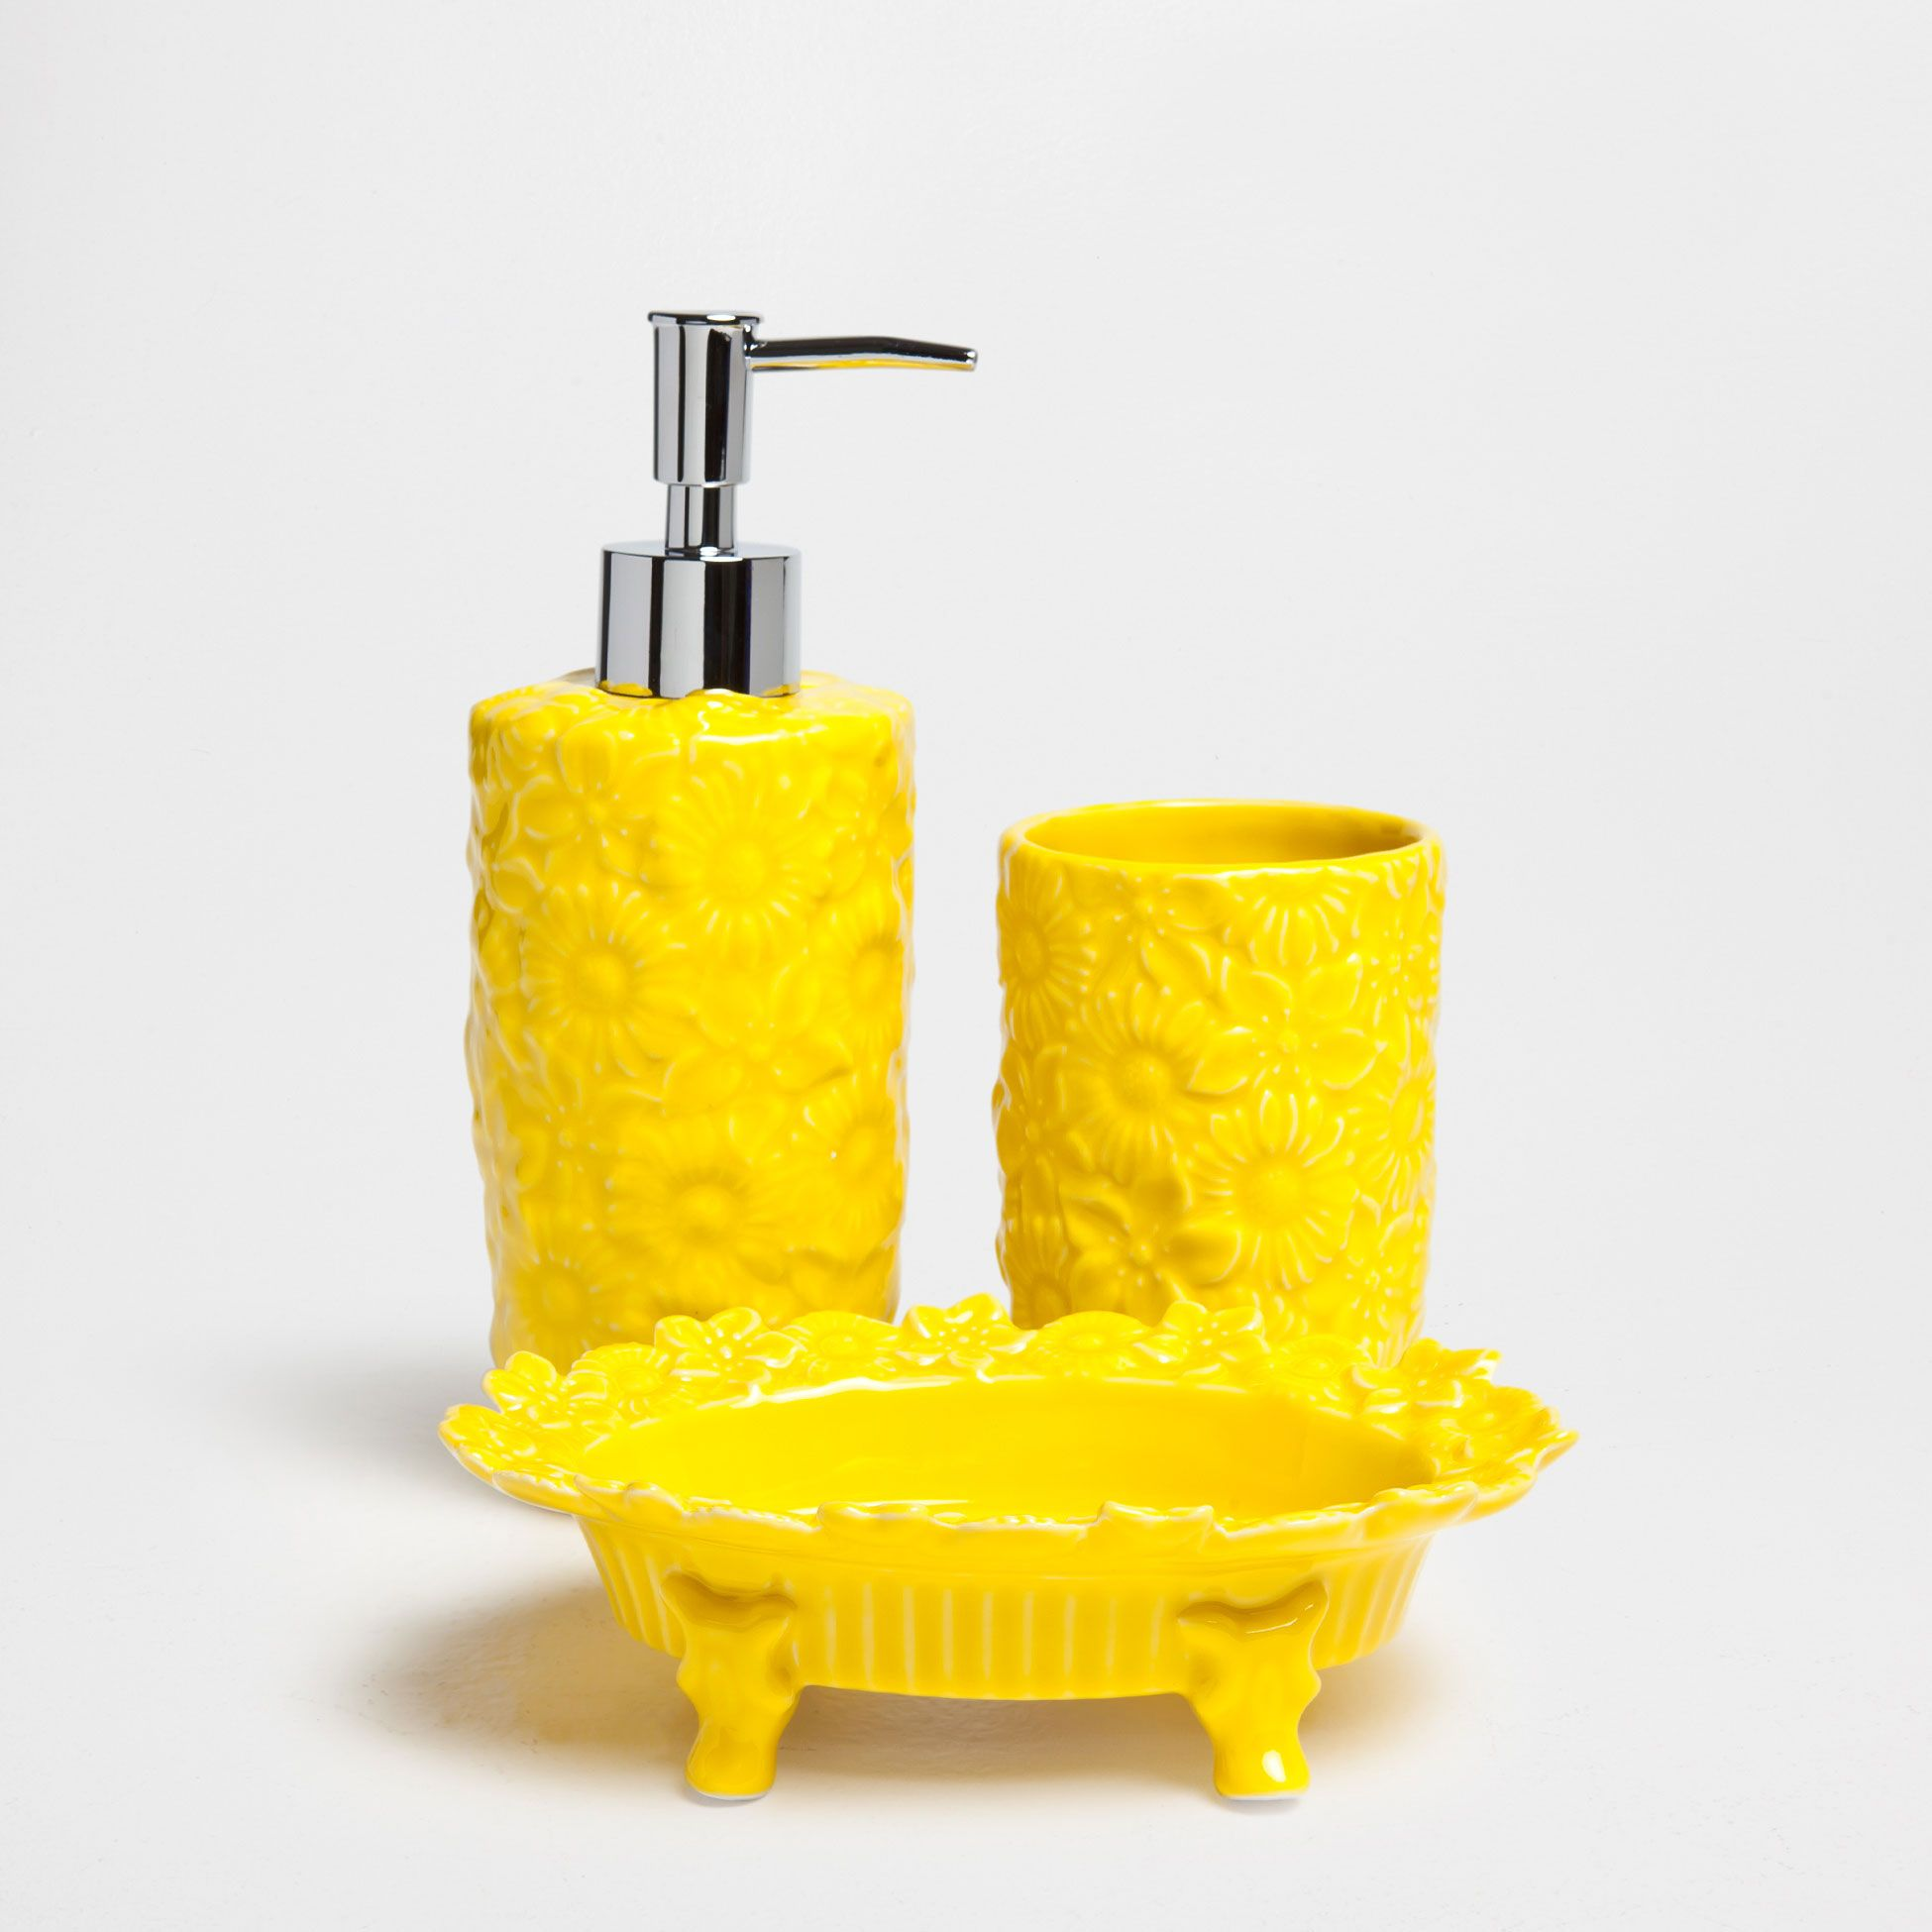 Yellow Porcelain Bathroom Set Accessories Bathroom Zara Home United Kingdom Yellow Bathroom Paint Yellow Bathroom Accessories Zara Home